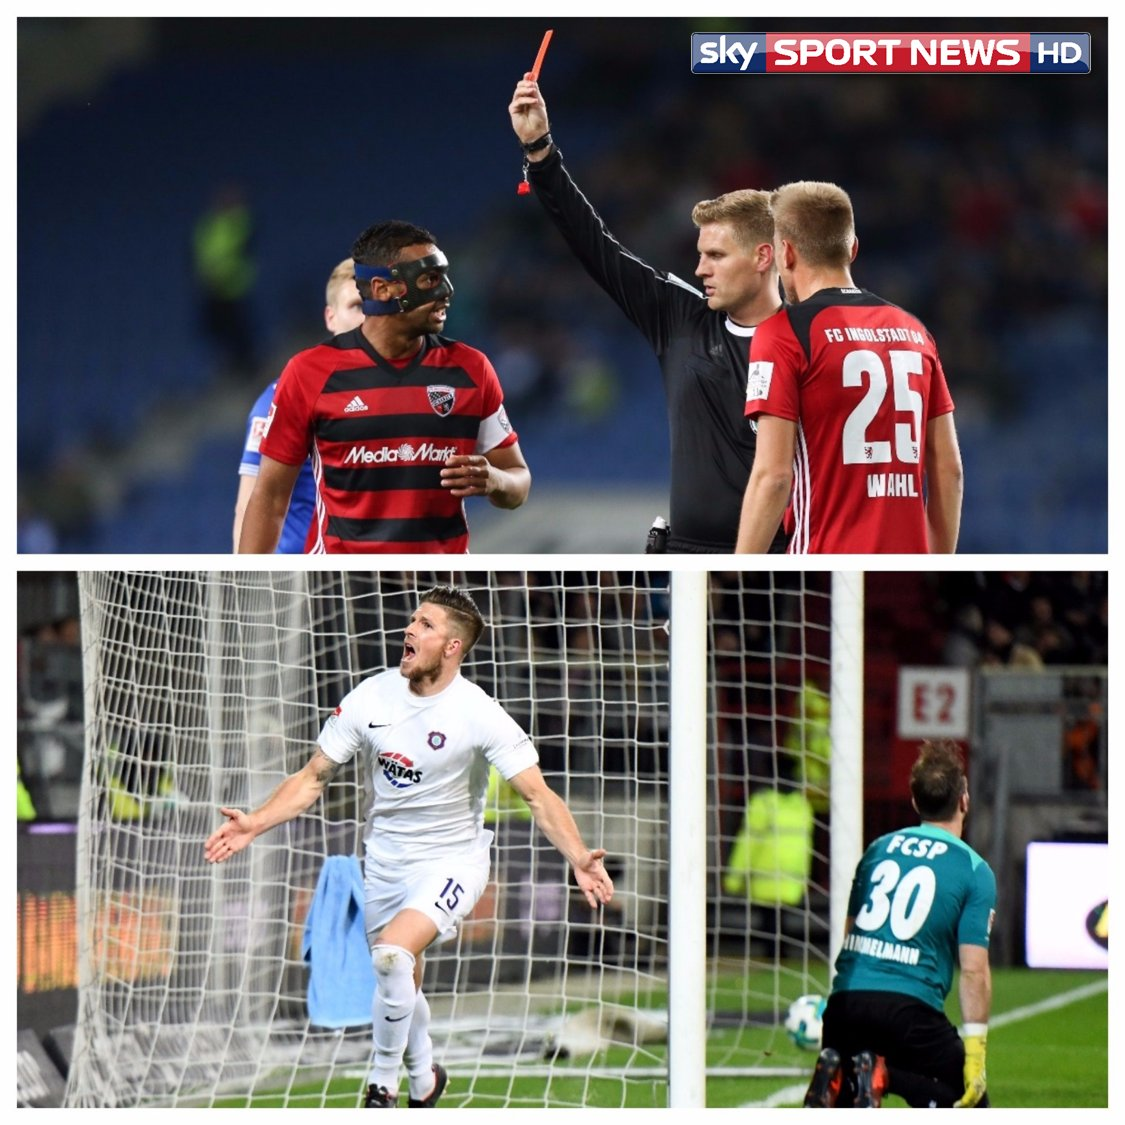 highlights 2 bundesliga